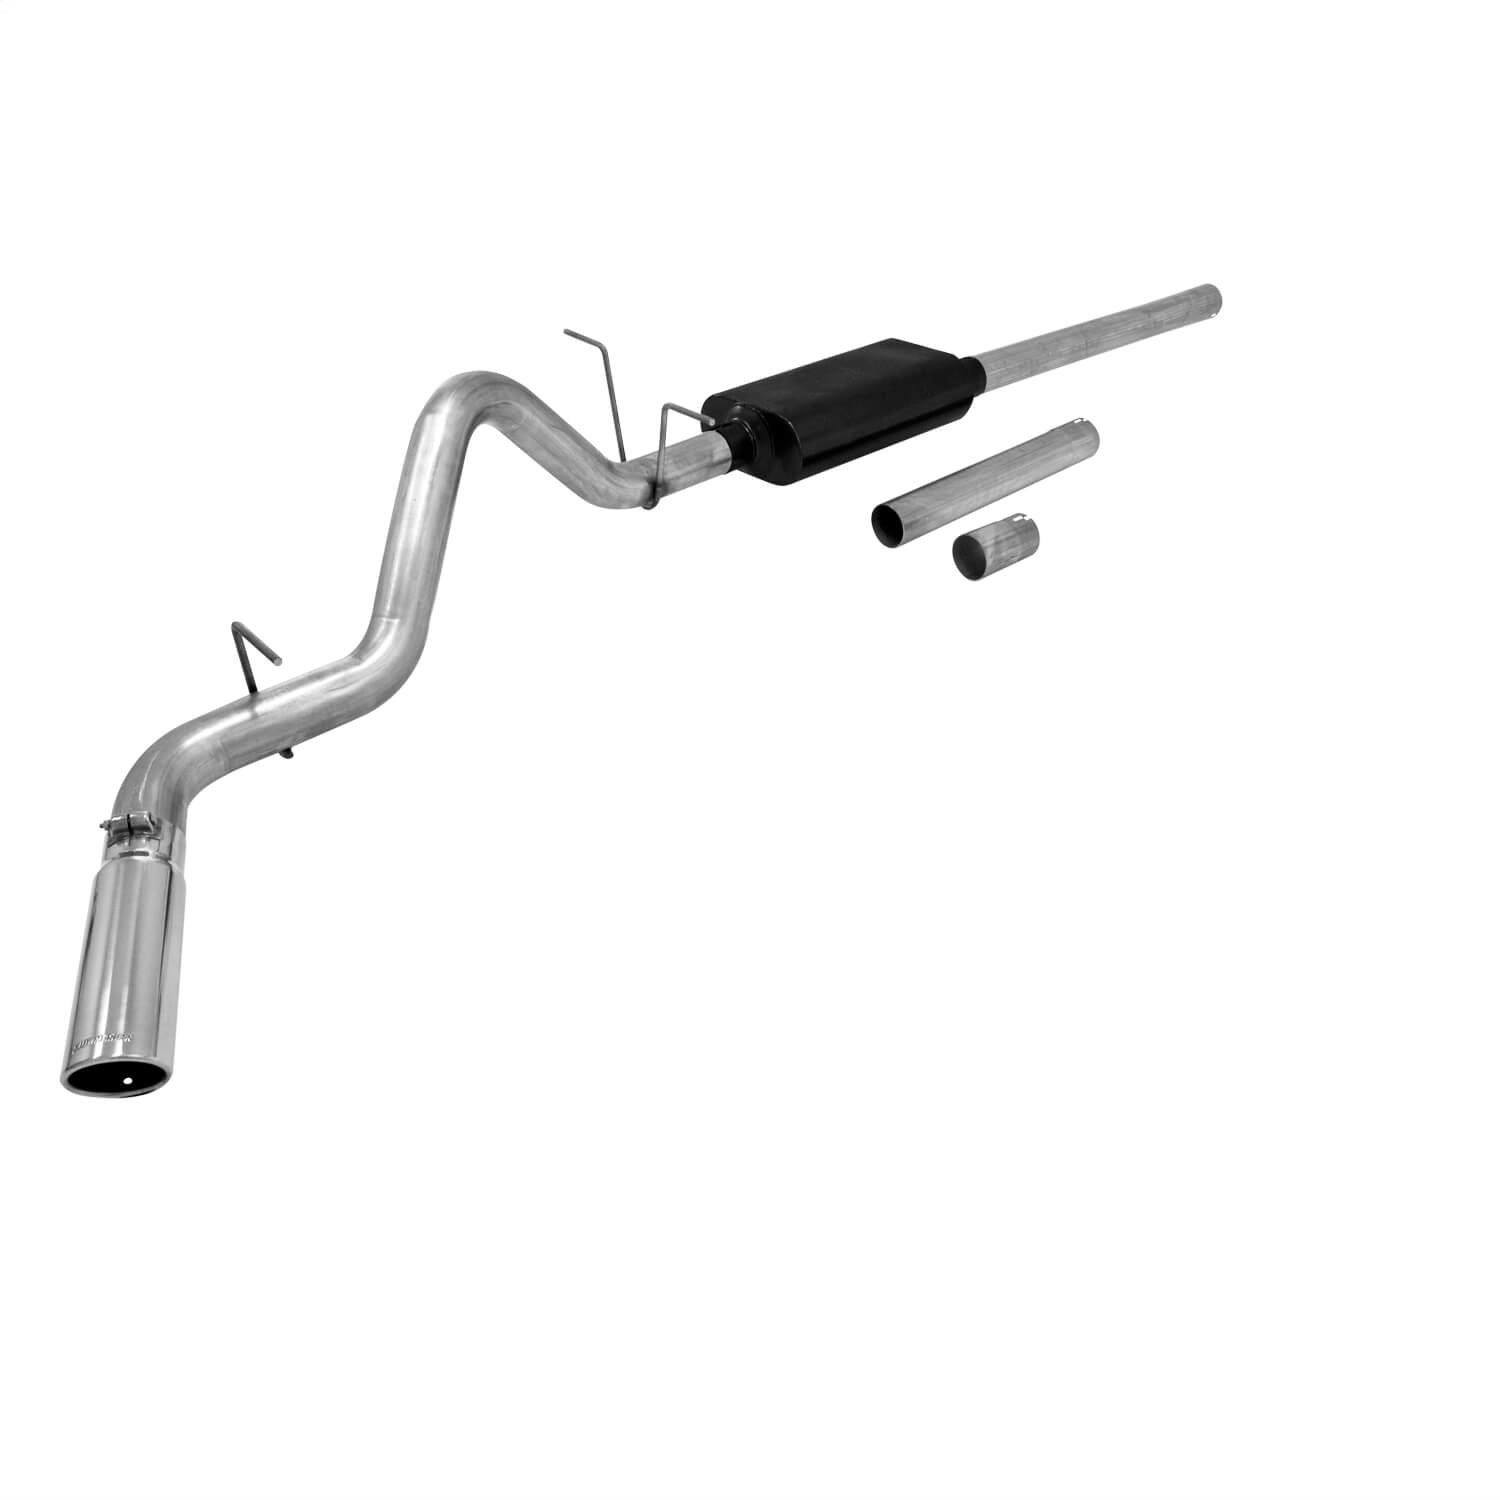 Flowmaster 817523 Force II Cat Back System